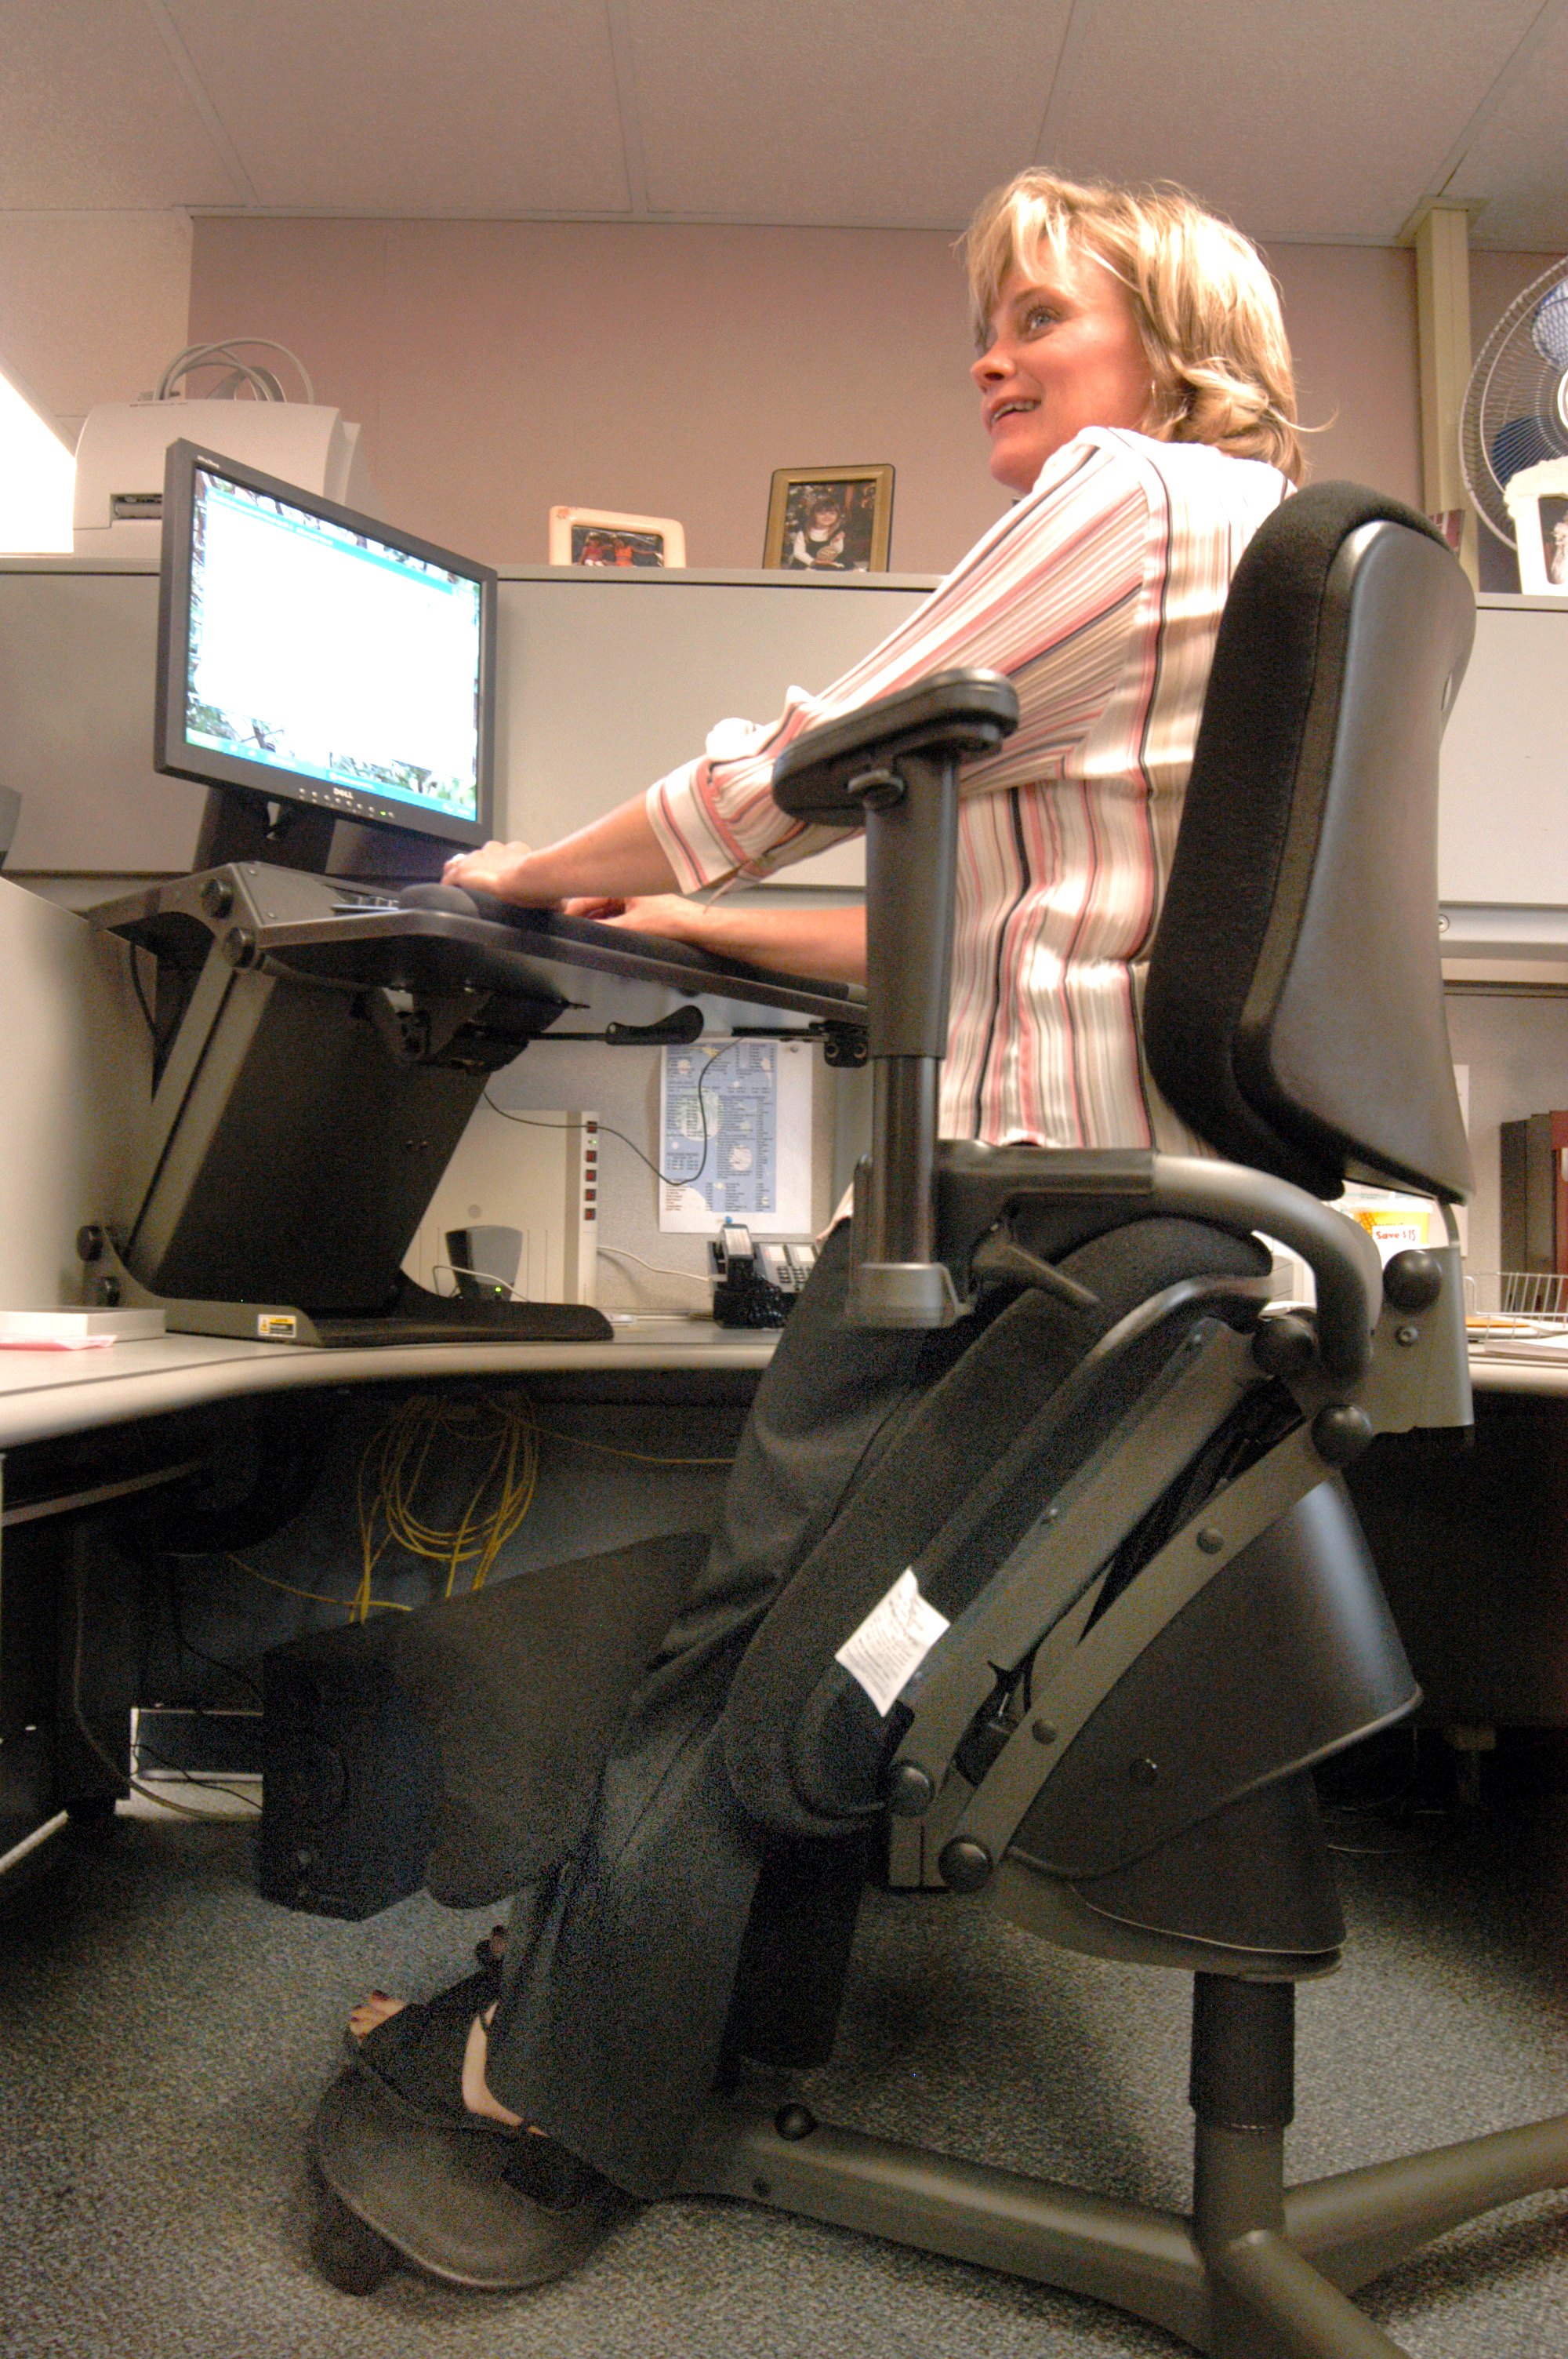 ergonomic chair desk system helps civilian stand to work u s